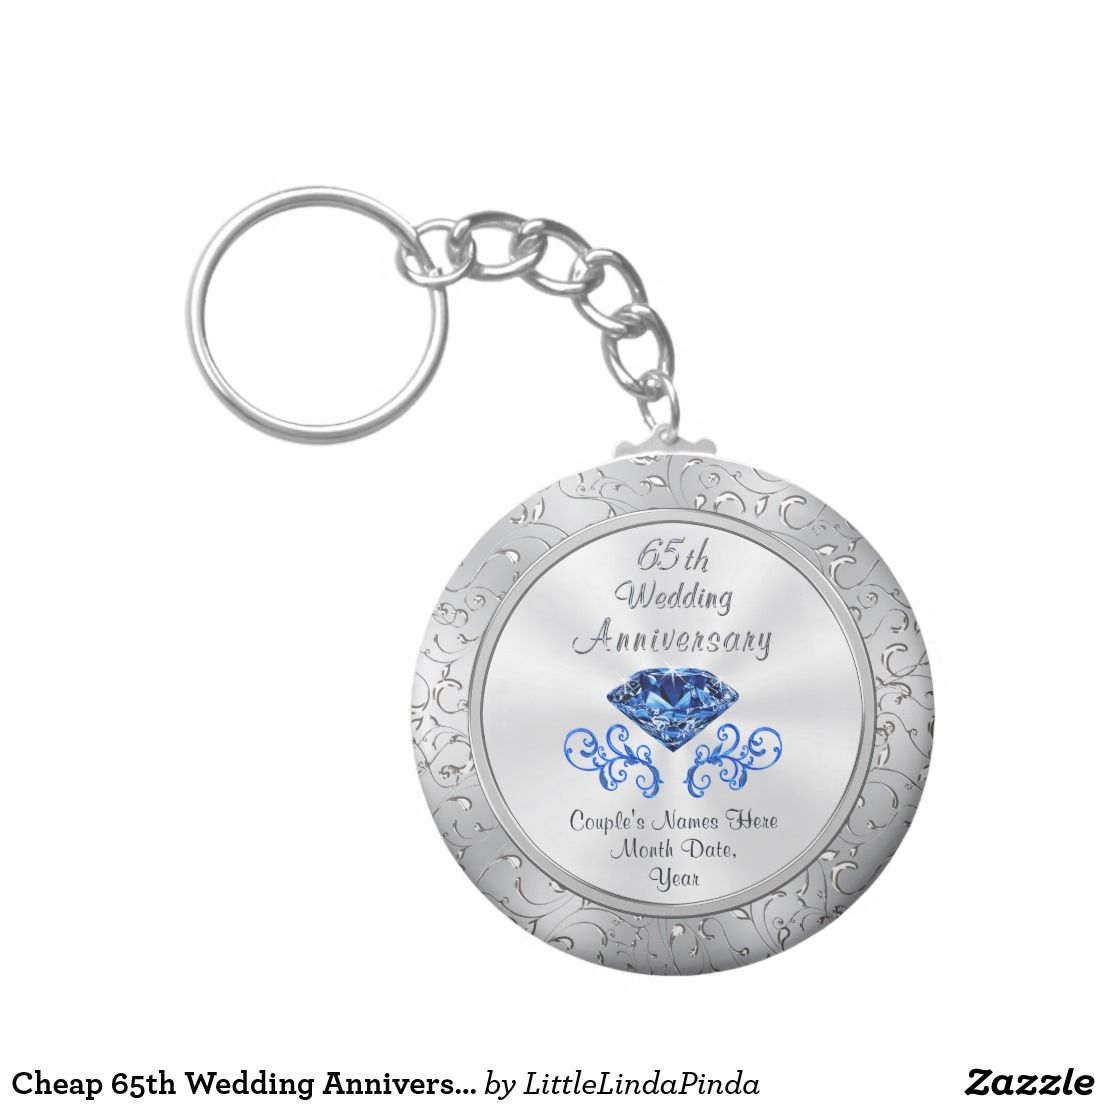 Cheap 65th wedding anniversary party favors keychain